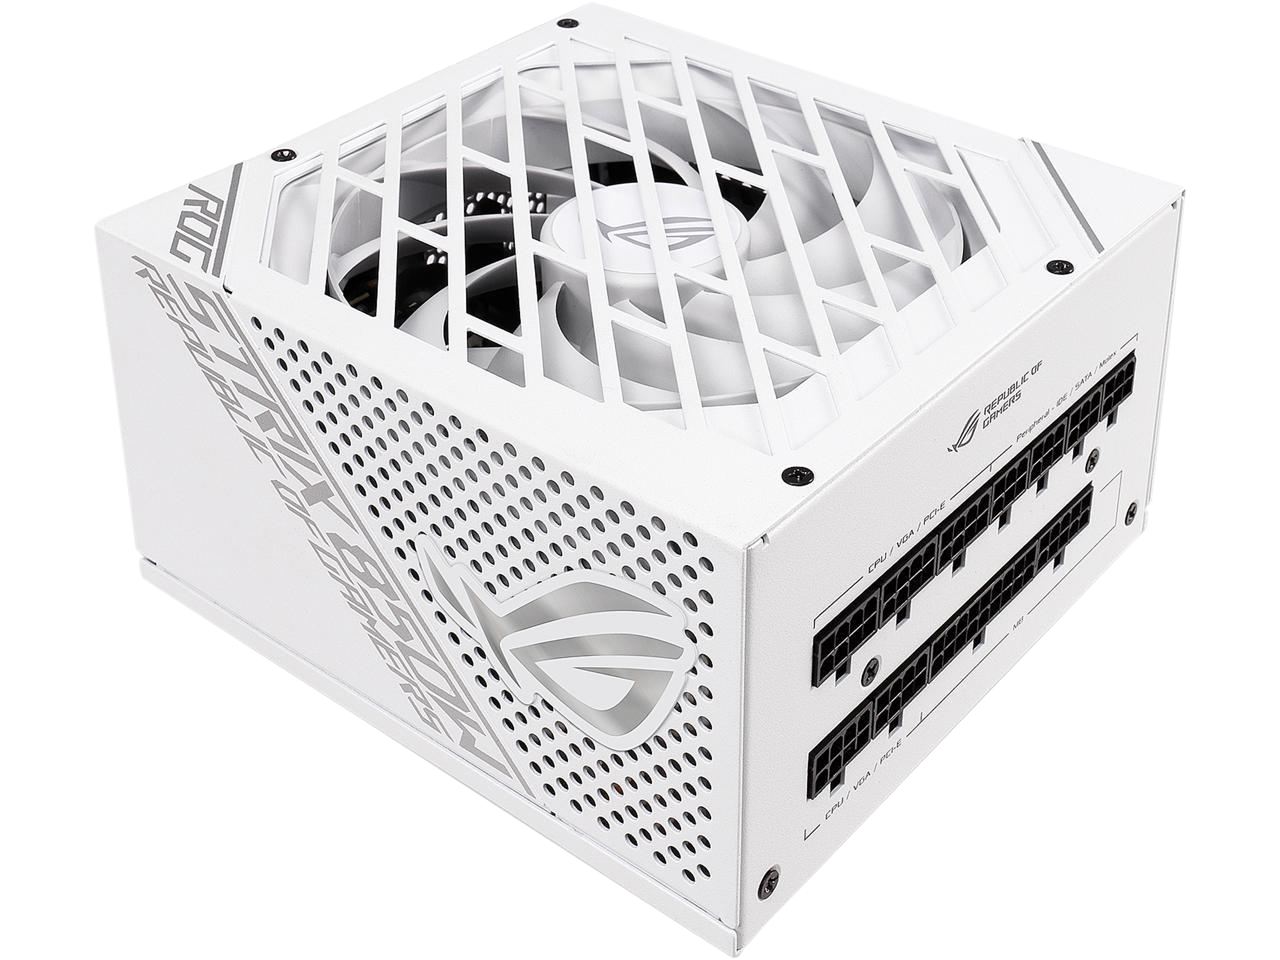 ASUS ROG STRIX 850G 850W White Edition